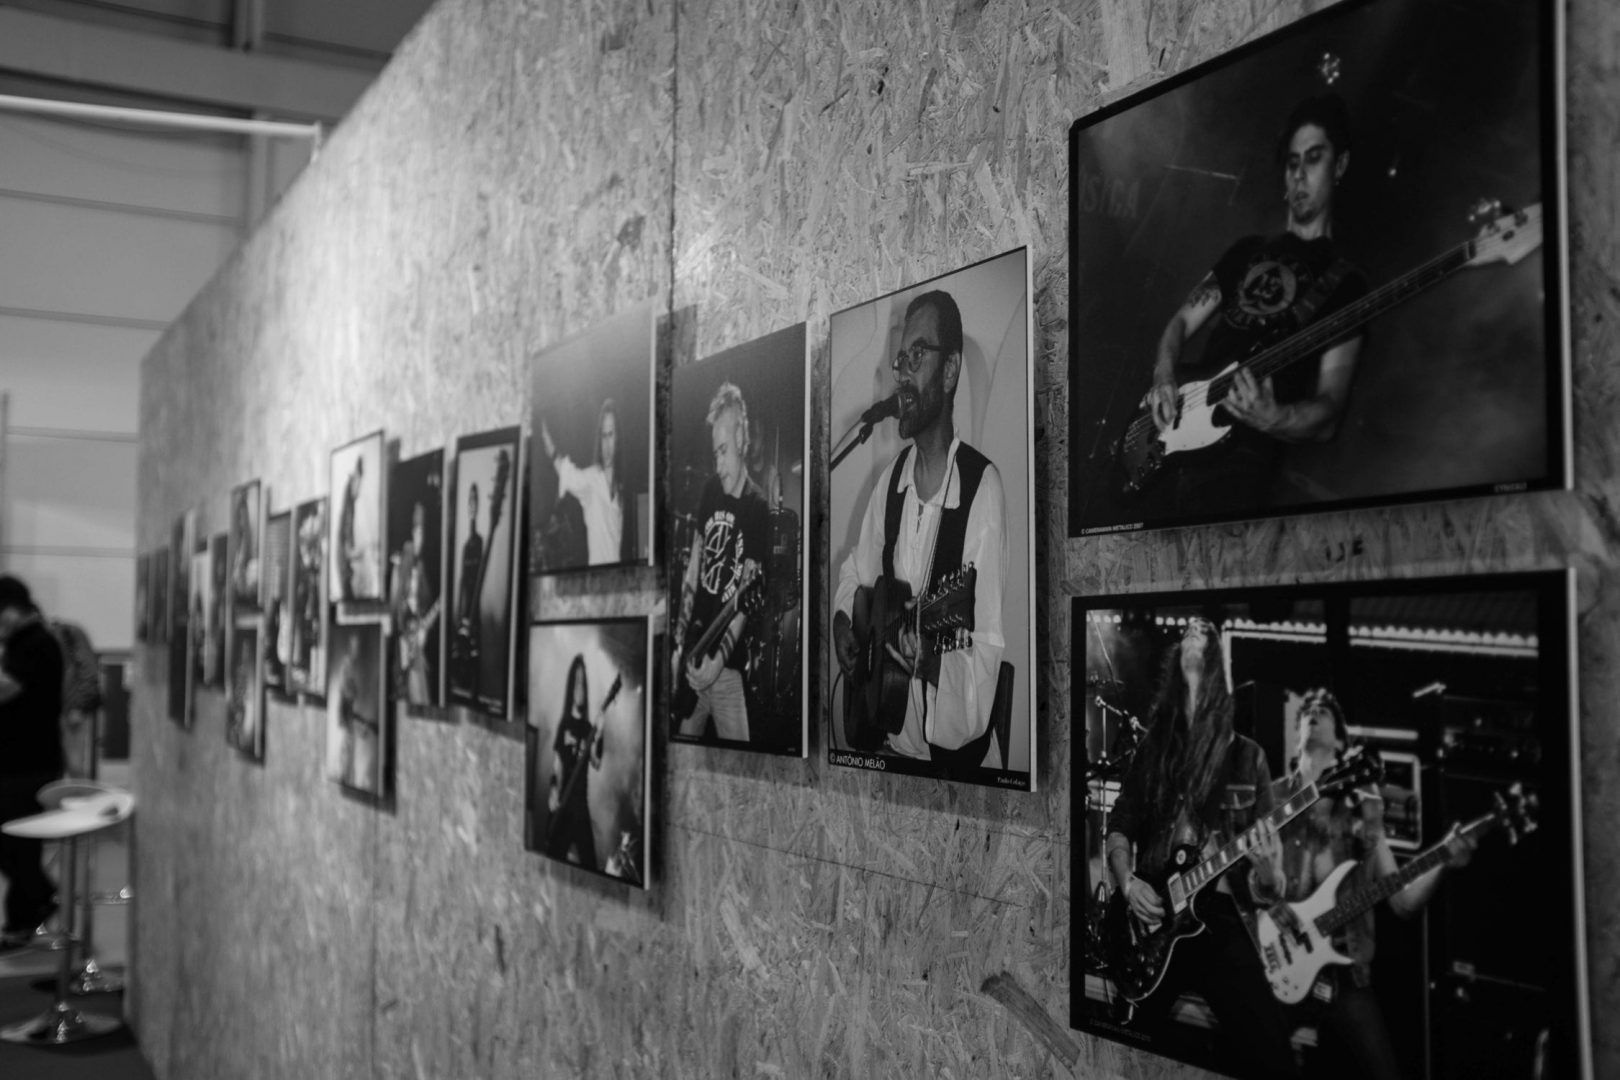 Concert photography exhibition from António Francisco Melão (Camera Man Metálico)